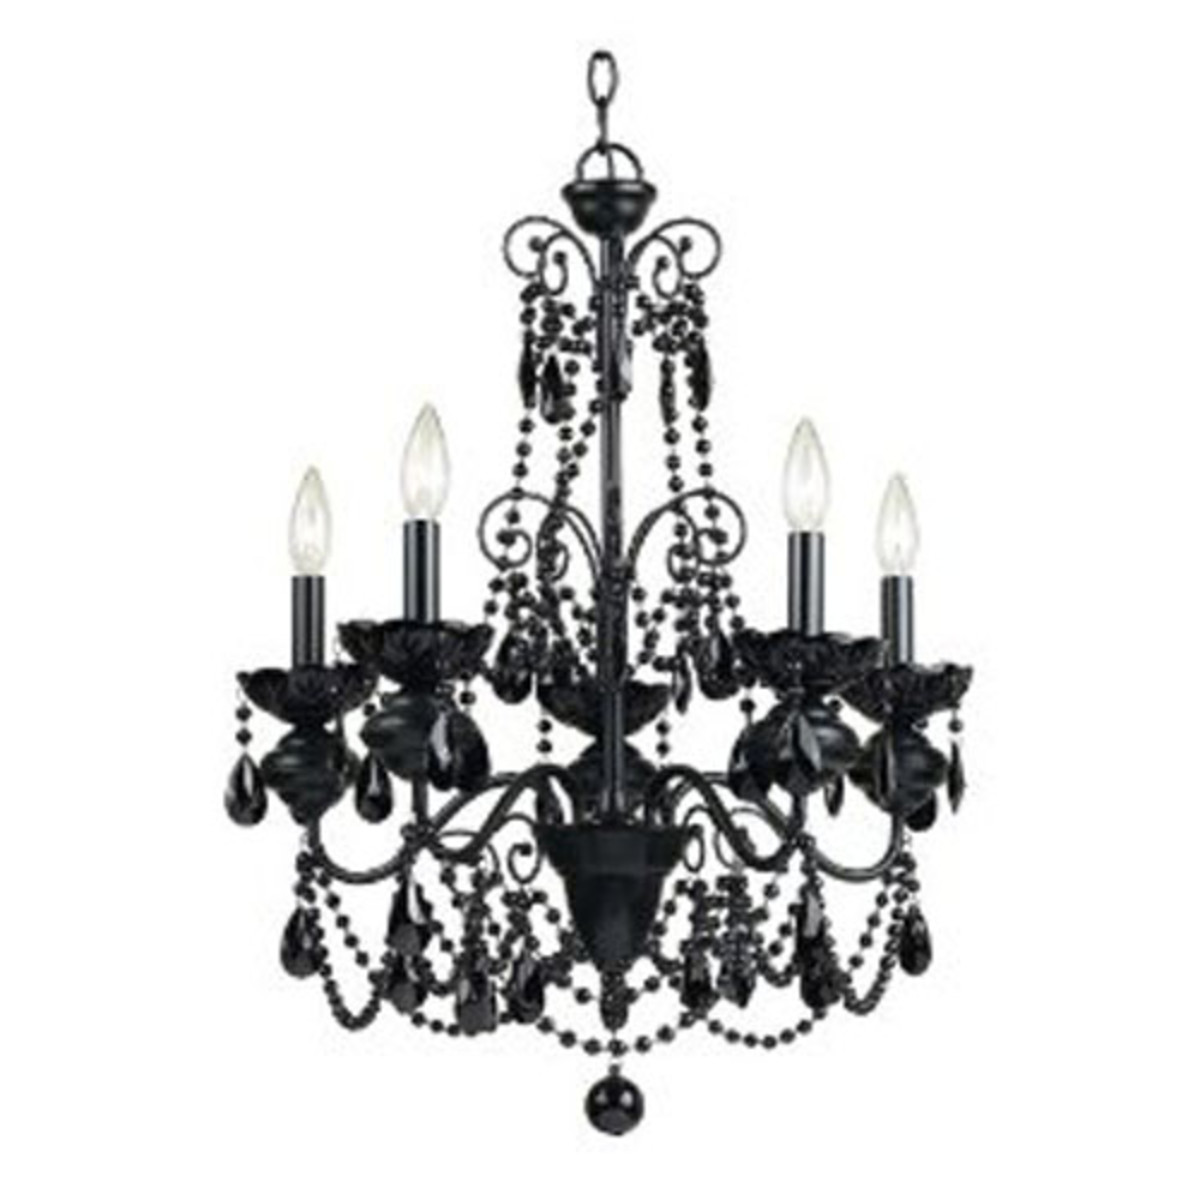 10 Chandeliers For Your Little Princess Room